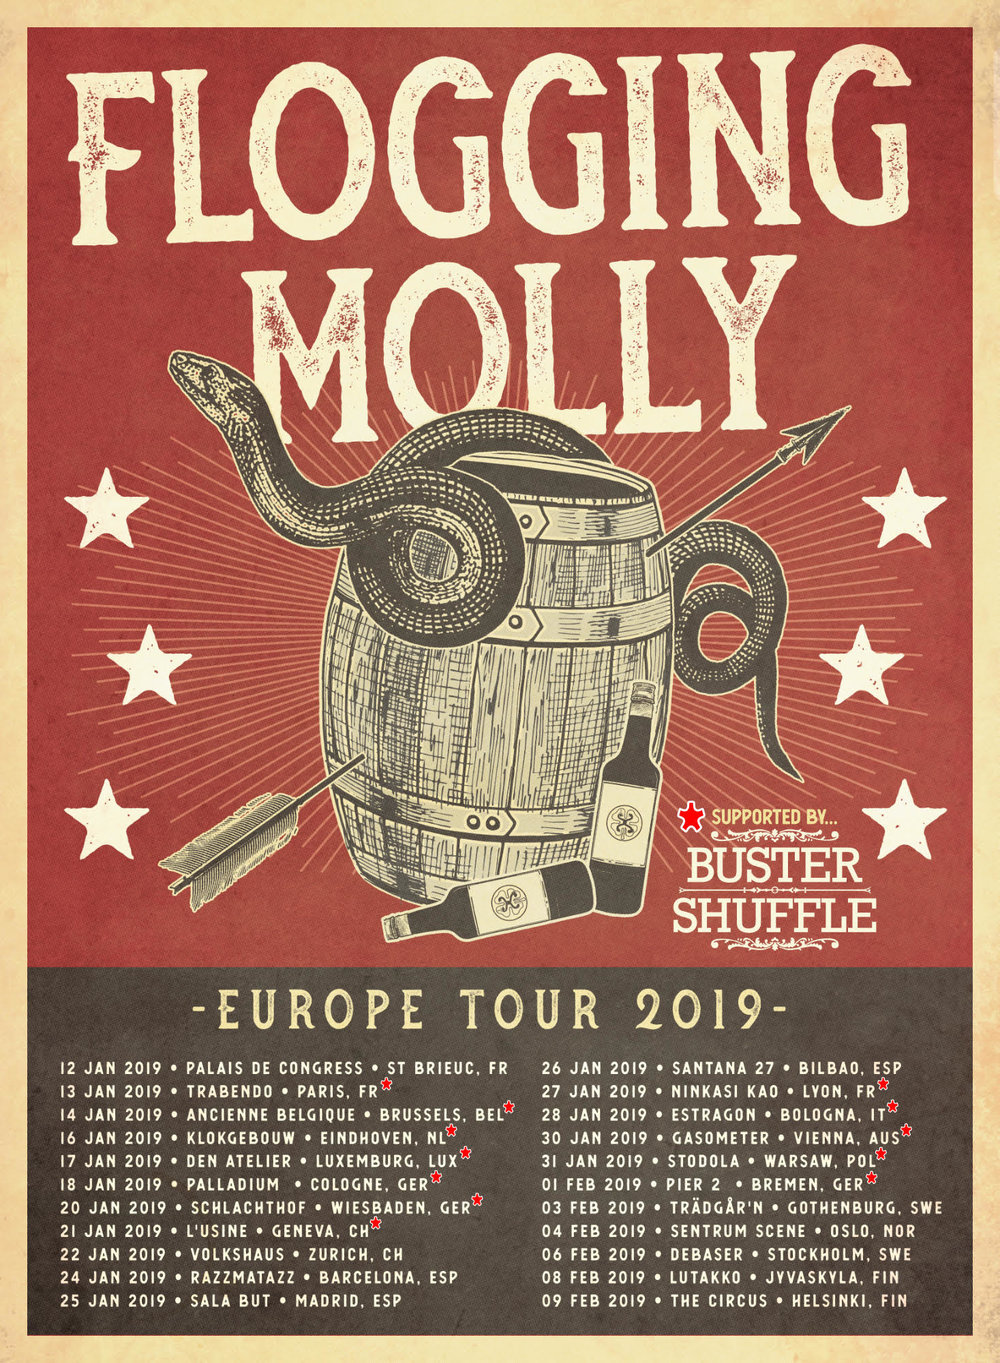 Life is good and we have some amazing news:  We will be supporting  Flogging Molly  throughout Europe for the most of January on their upcoming Tour!!!  We know you will not want to miss this, so go ahead and pick your date! And be quick, some shows are SOLD OUT already:  13.01. FR Paris - Trabendo 14.01. BE Brussels - Ancienne Belgique - AB (SOLD OUT) 16.01. NL Eindhoven - Klokgebouw 17.01. LUX Luxembourg - den Atelier (SOLD OUT) 18.01. DE Cologne - Palladium 20.01. DE Wiesbaden - Schlachthof Wiesbaden (SOLD OUT) 21.01. CH Geneva - Le Zoo / Usine (Officiel) 27.01. FR Lyon - Ninkasi Gerland 28.01. IT Bologna - Estragon Club 30.01. AT Vienna - Gasometer 31.01. PL Warsaw - klub Stodoła 01.02. DE Bremen - Pier2